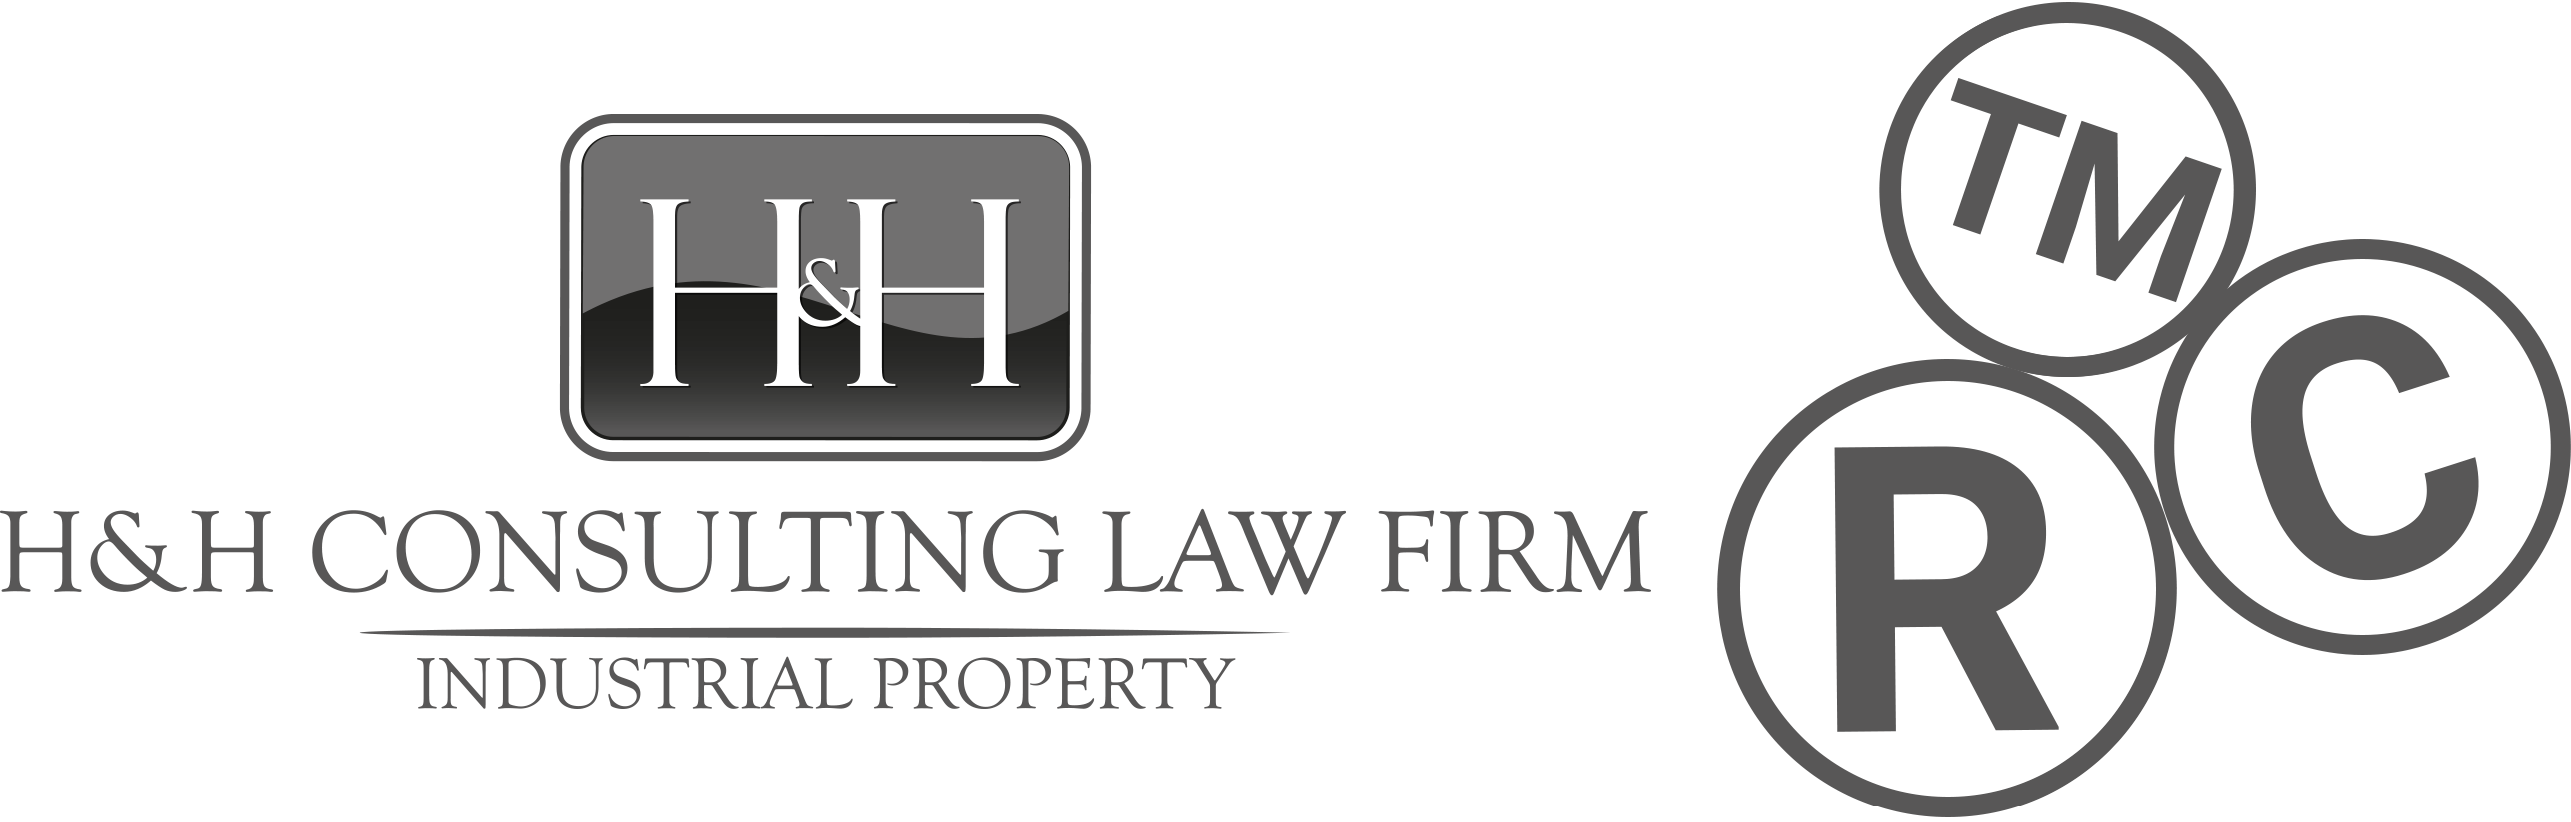 H&H Consulting Law Firm